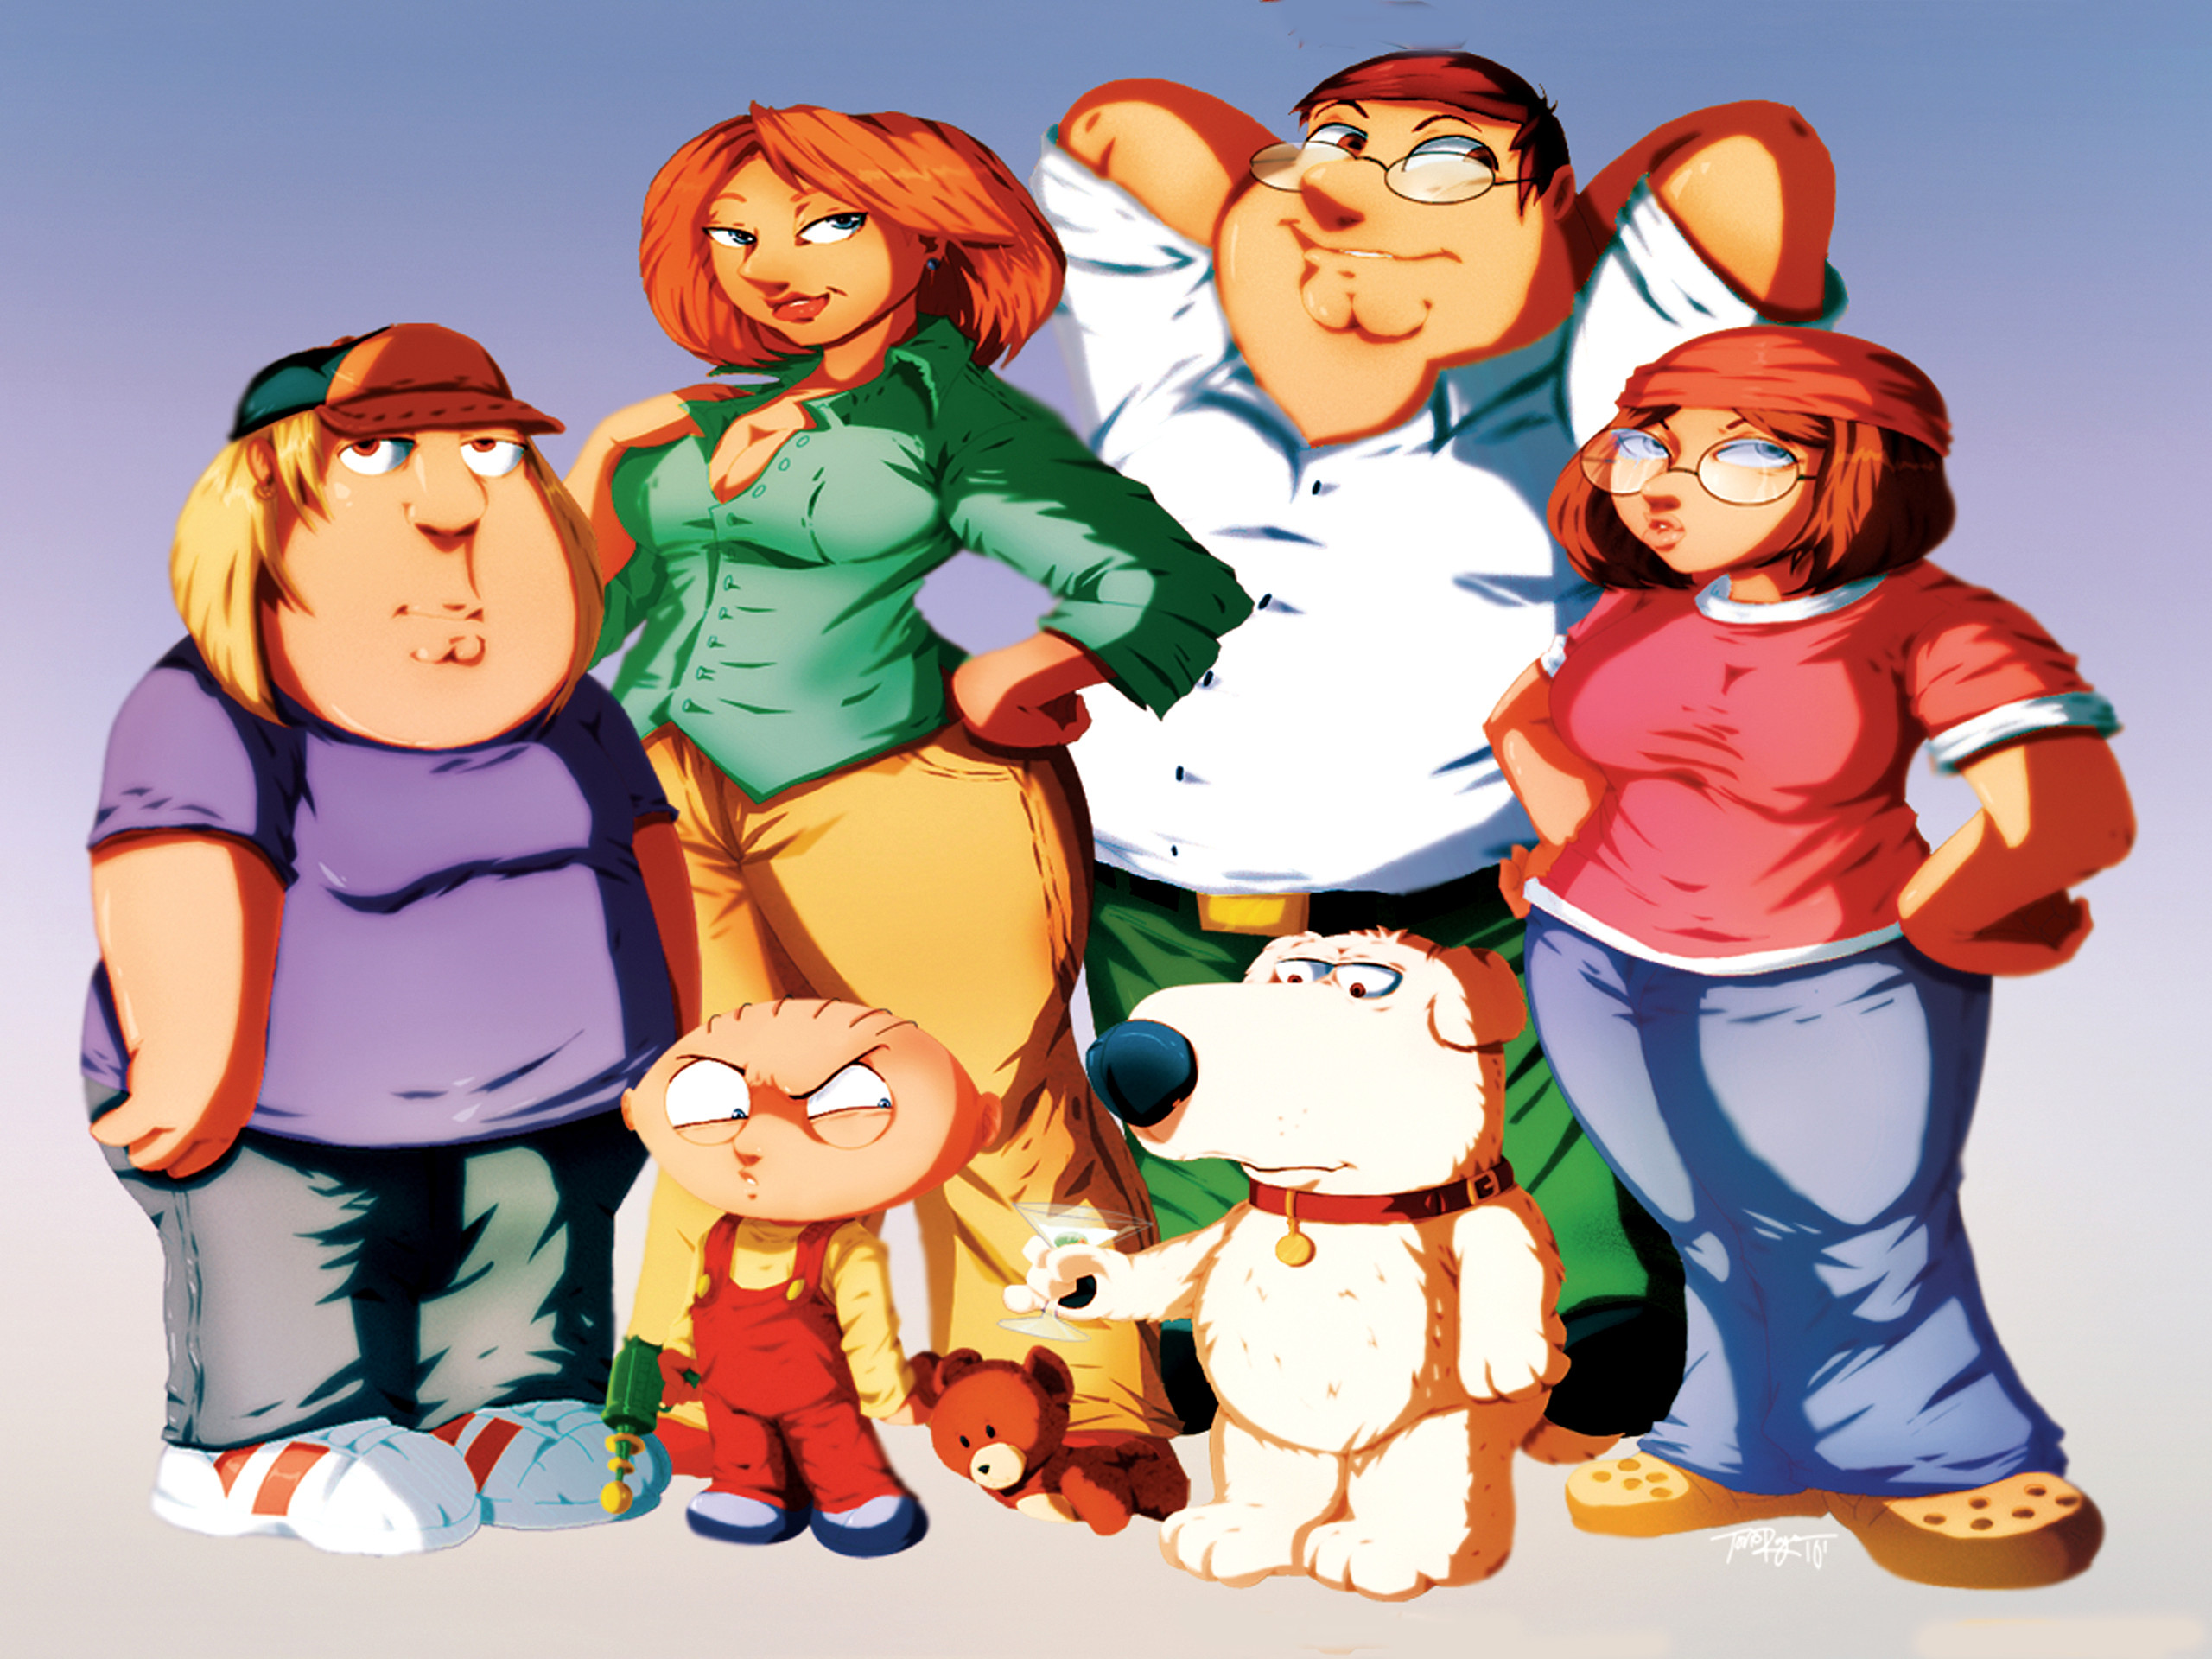 Family Guy Wallpaper for Computer 54 images 2560x1920